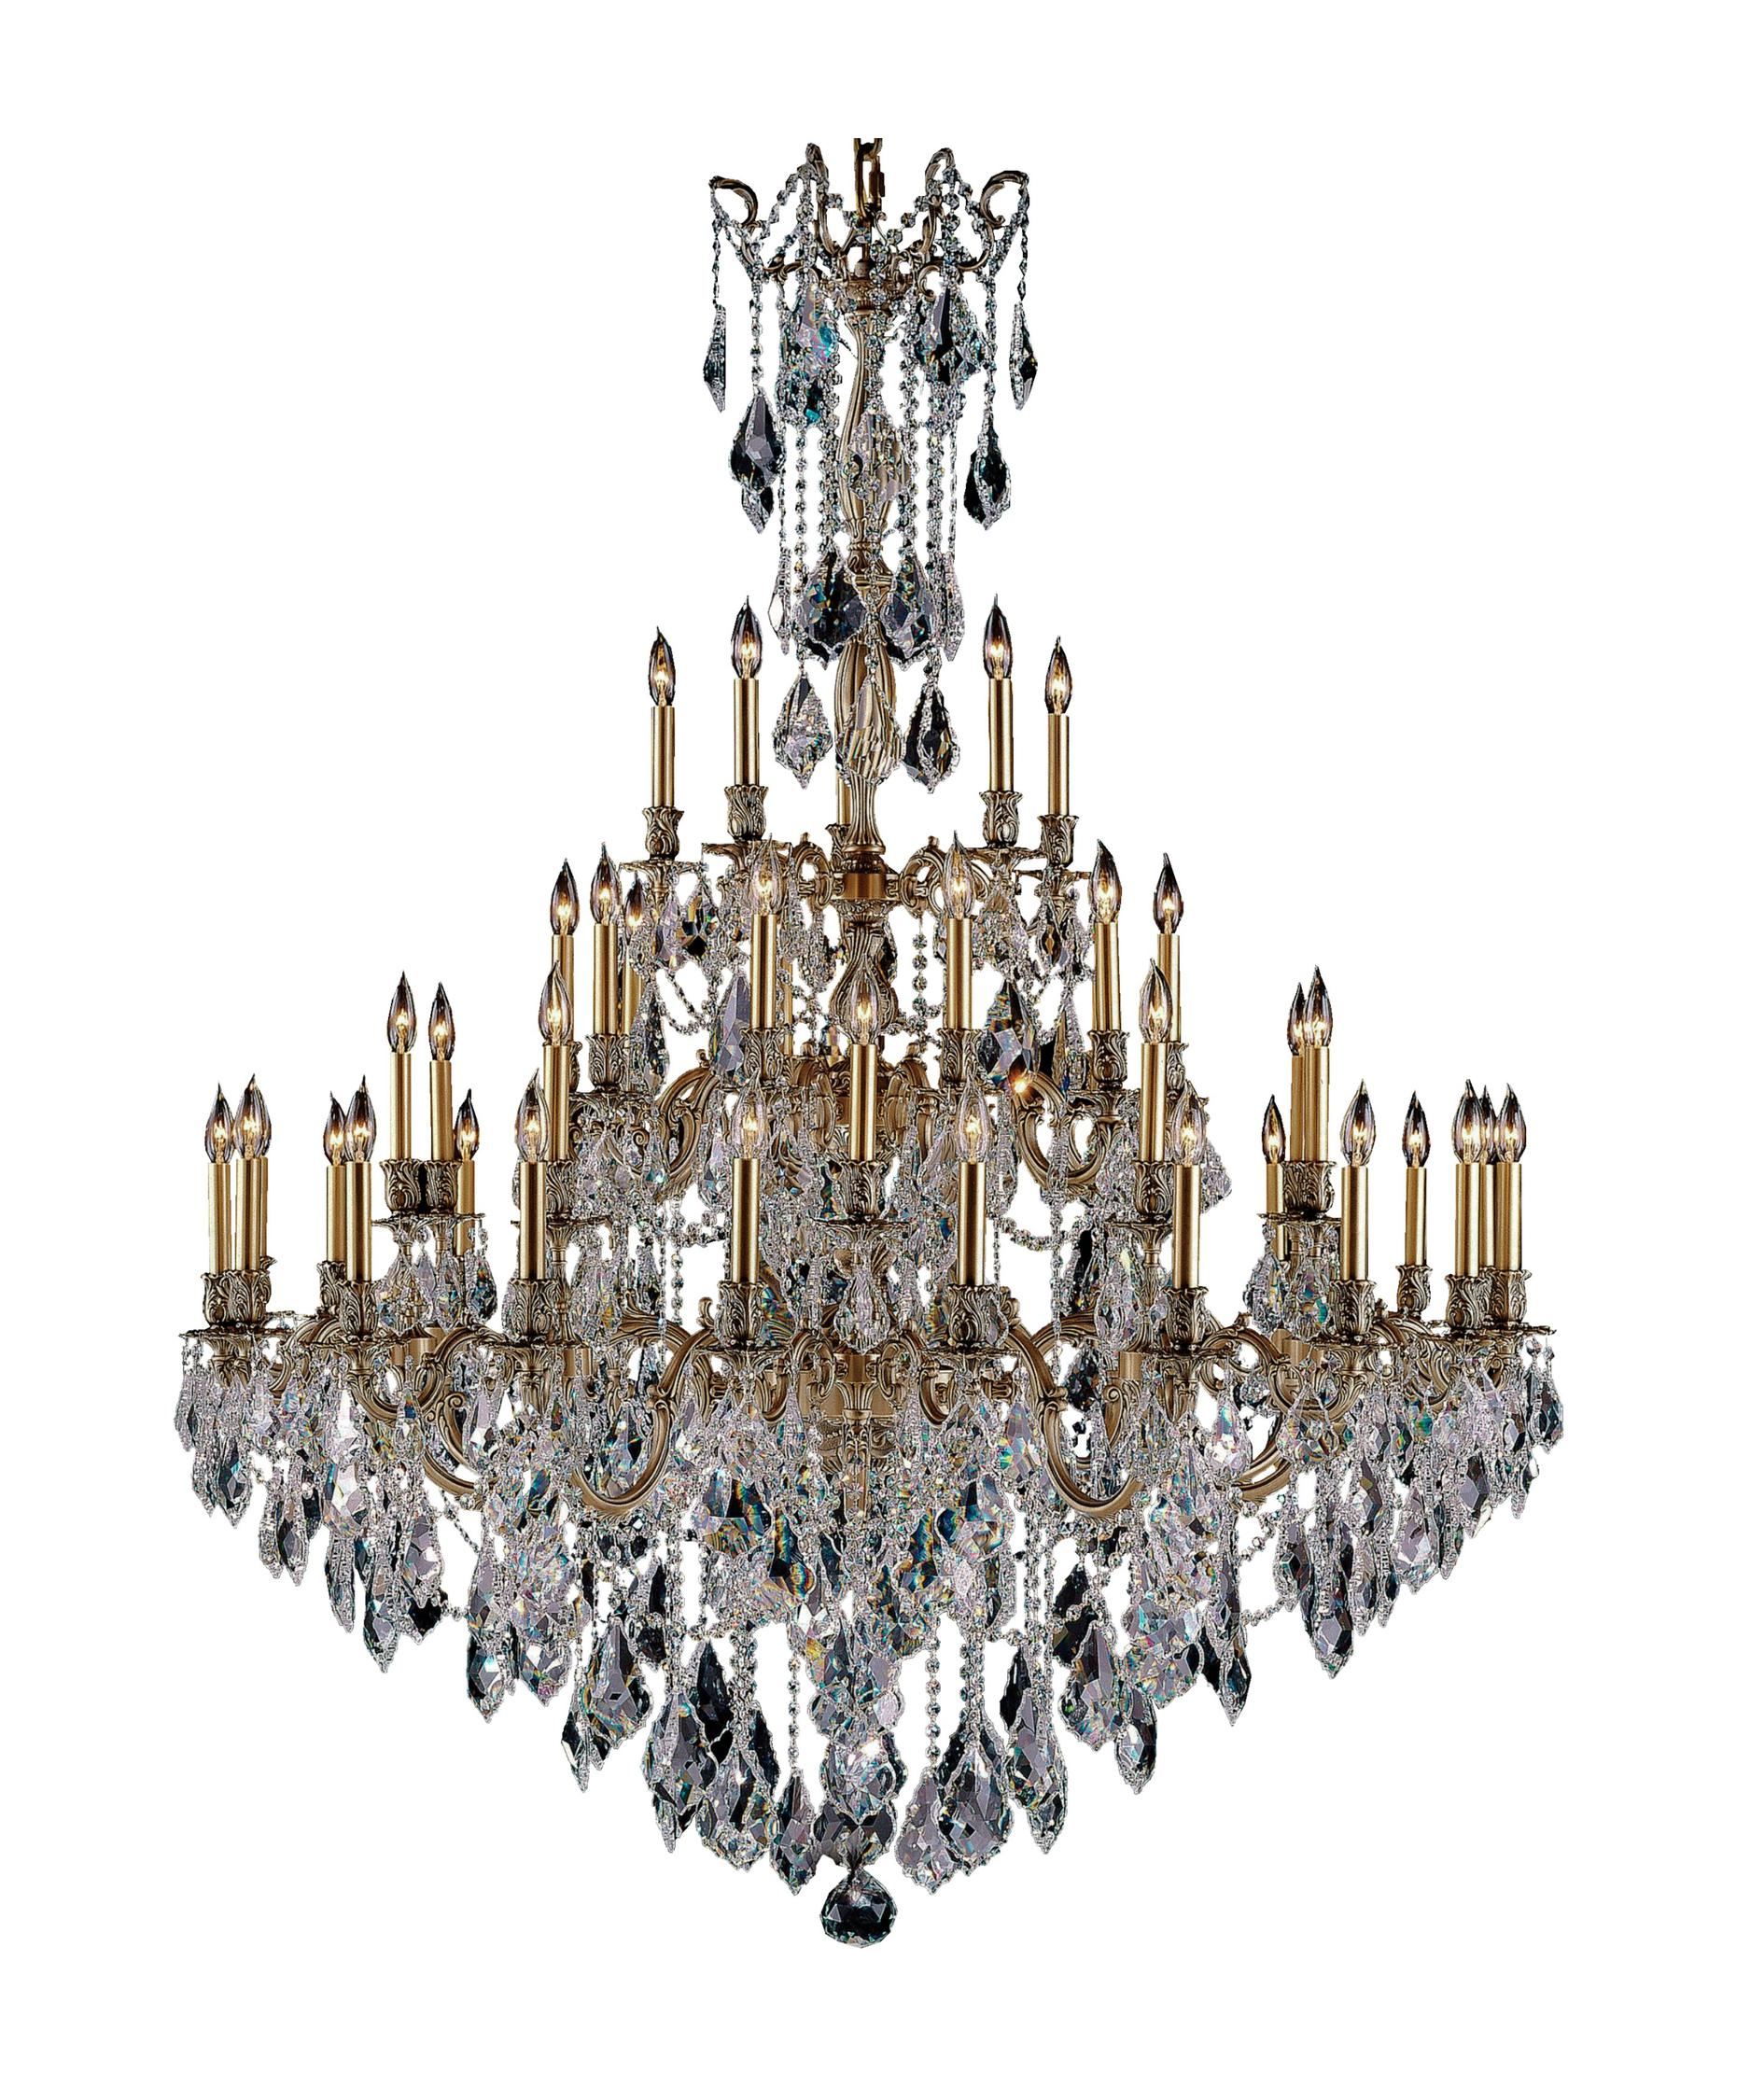 American Brass and Crystal Elise 54 Inch Wide 45 Light Chandelier – American Brass and Crystal Chandeliers